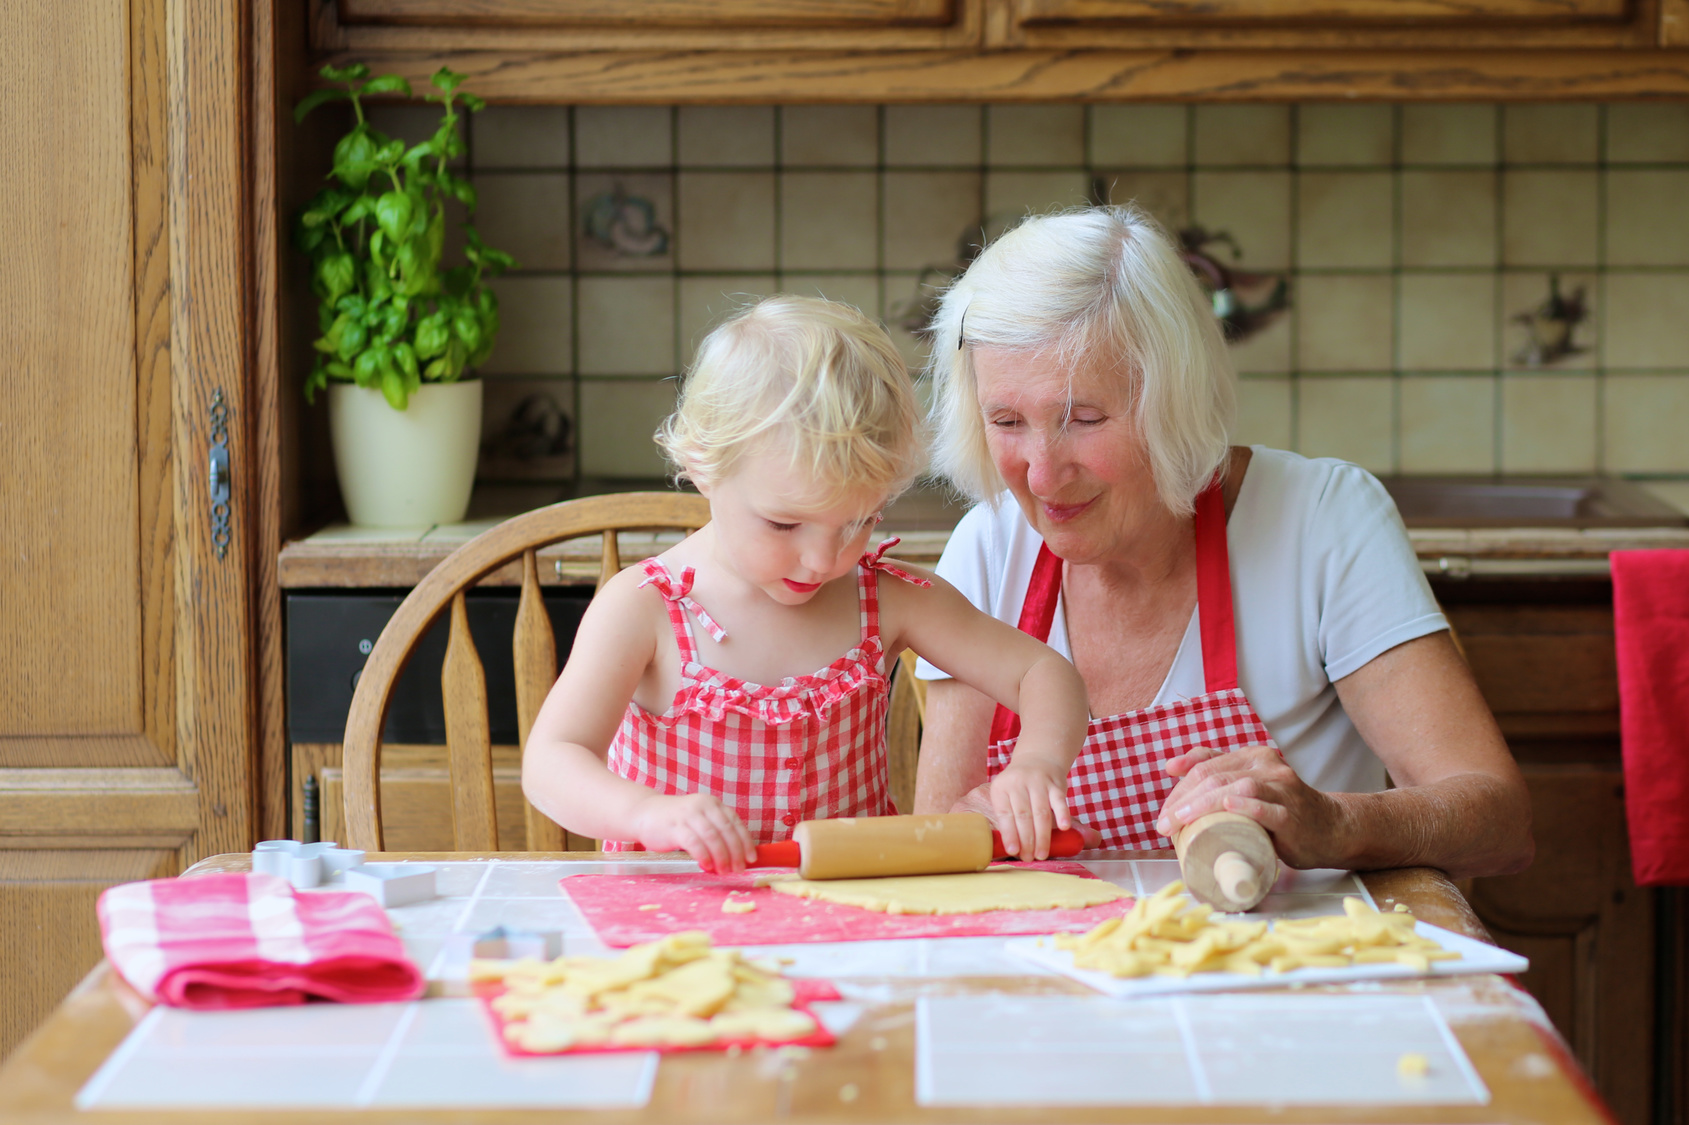 Grandmother and granddaughter preparing cookies in the kitchen